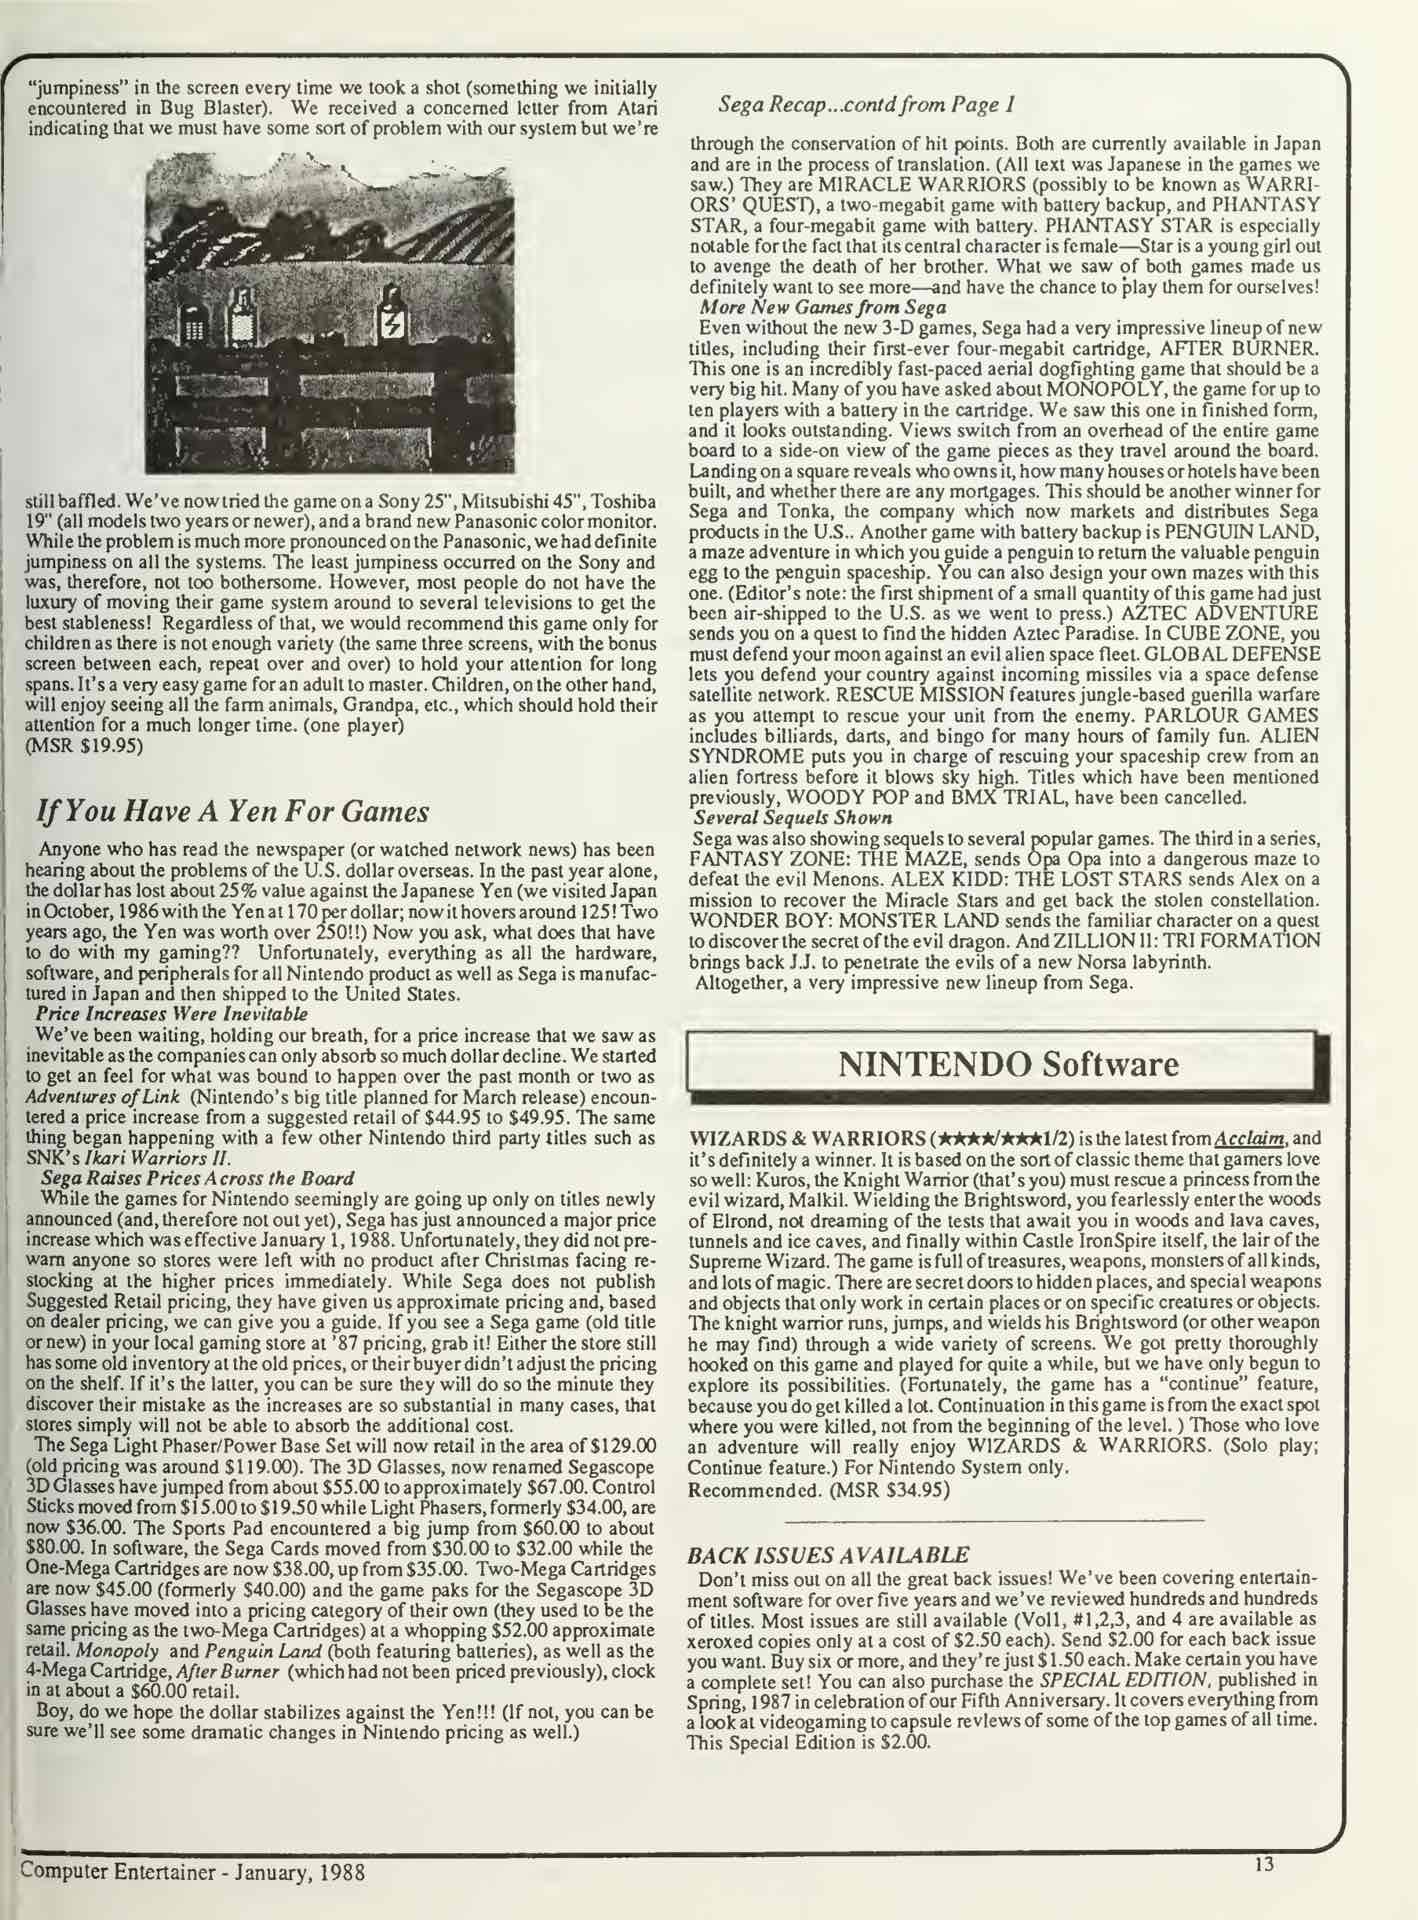 Computer Entertainer - January 1988 - Pg 13